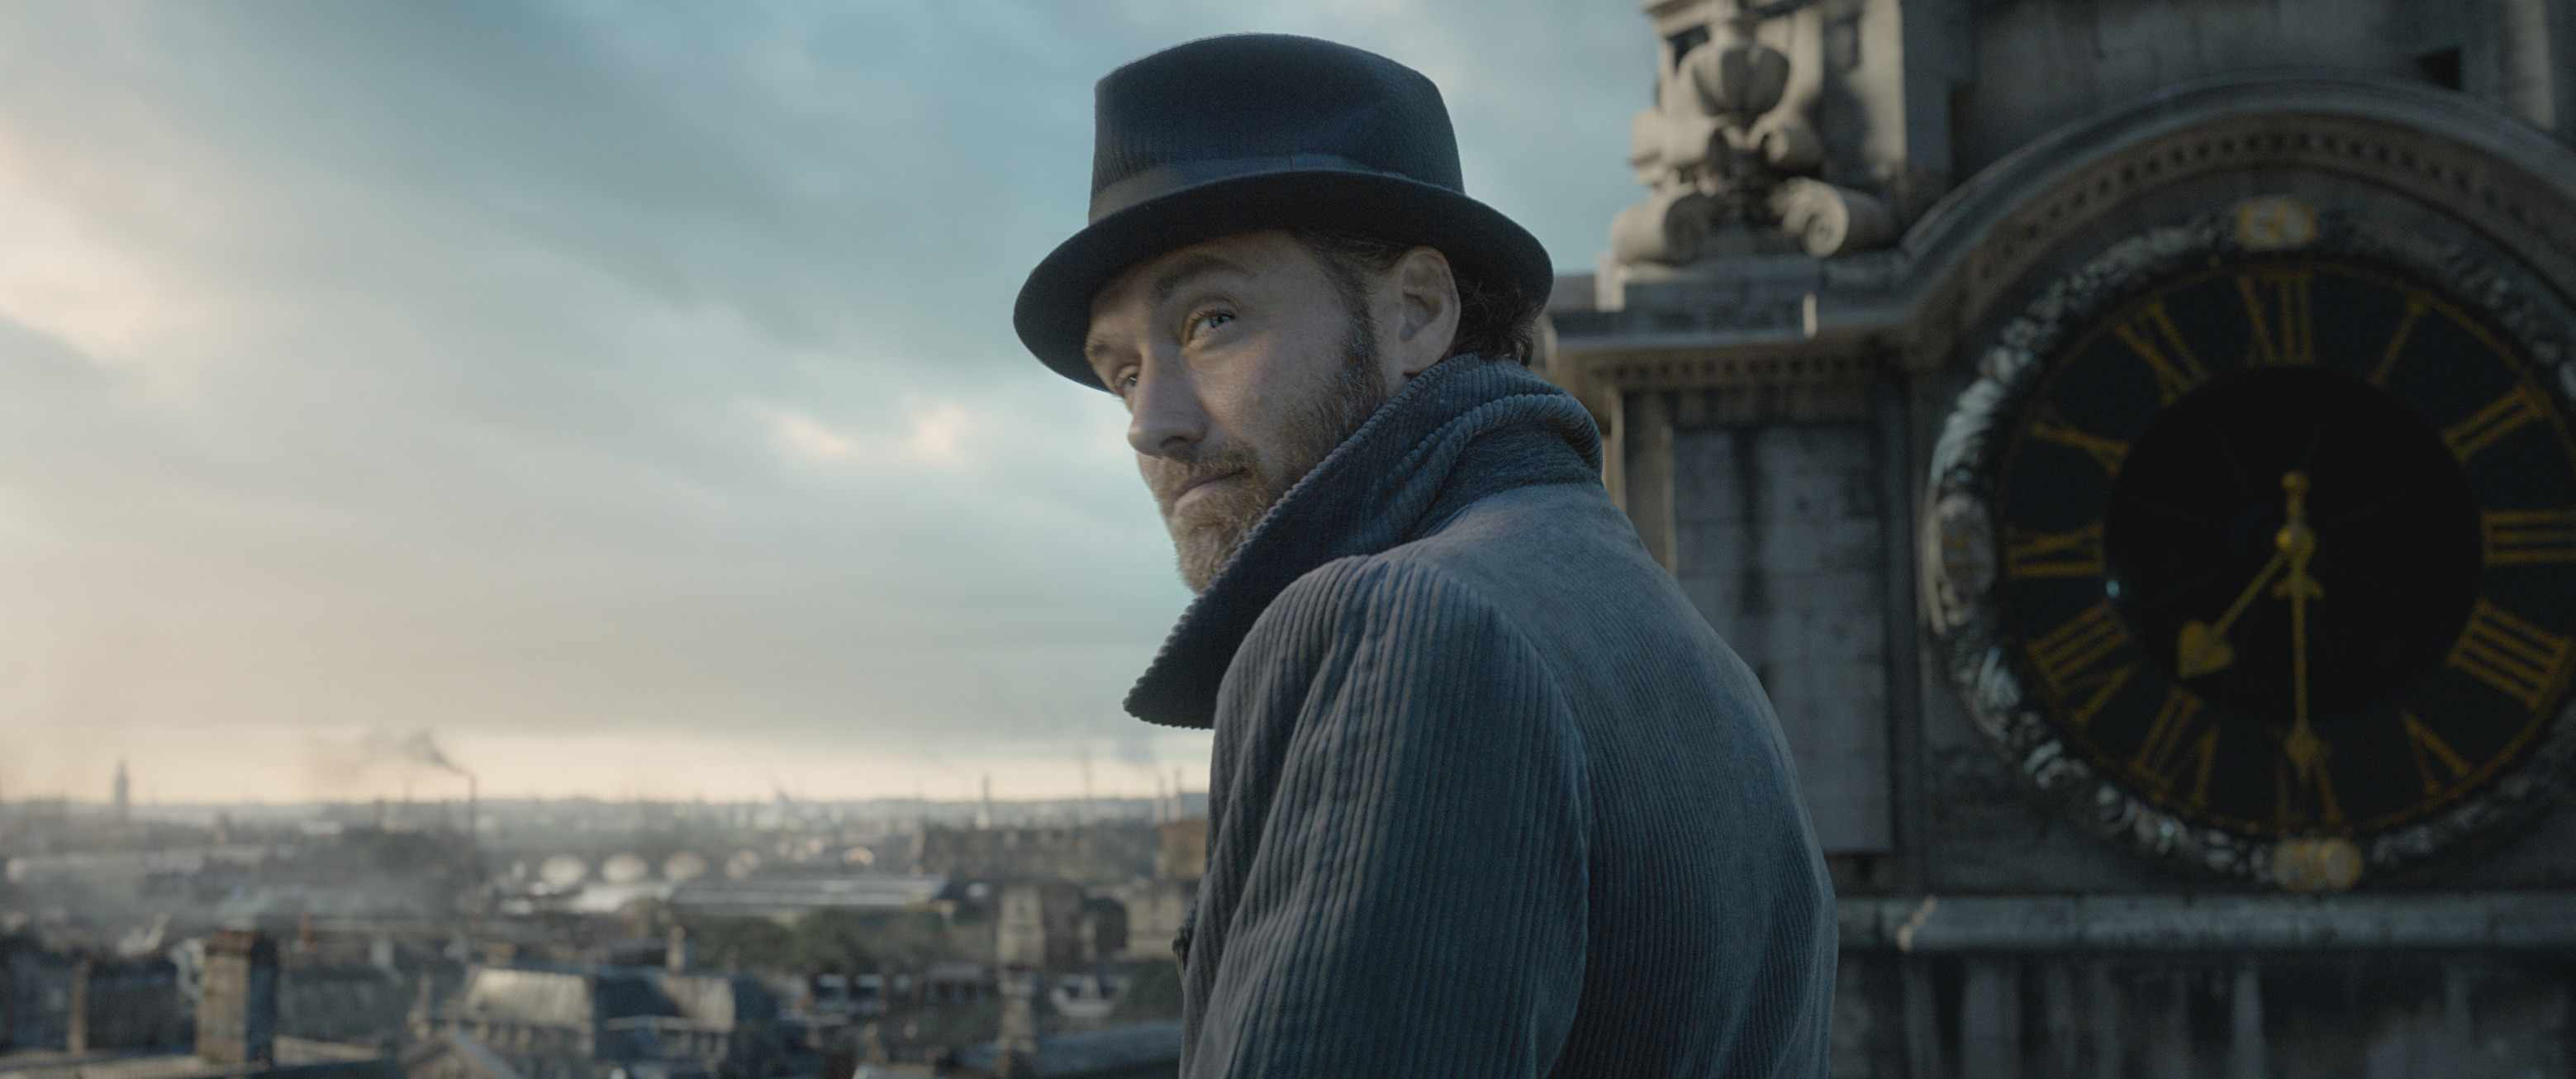 Jude Law is Albus Dumbledore in Fantastic Beasts 2